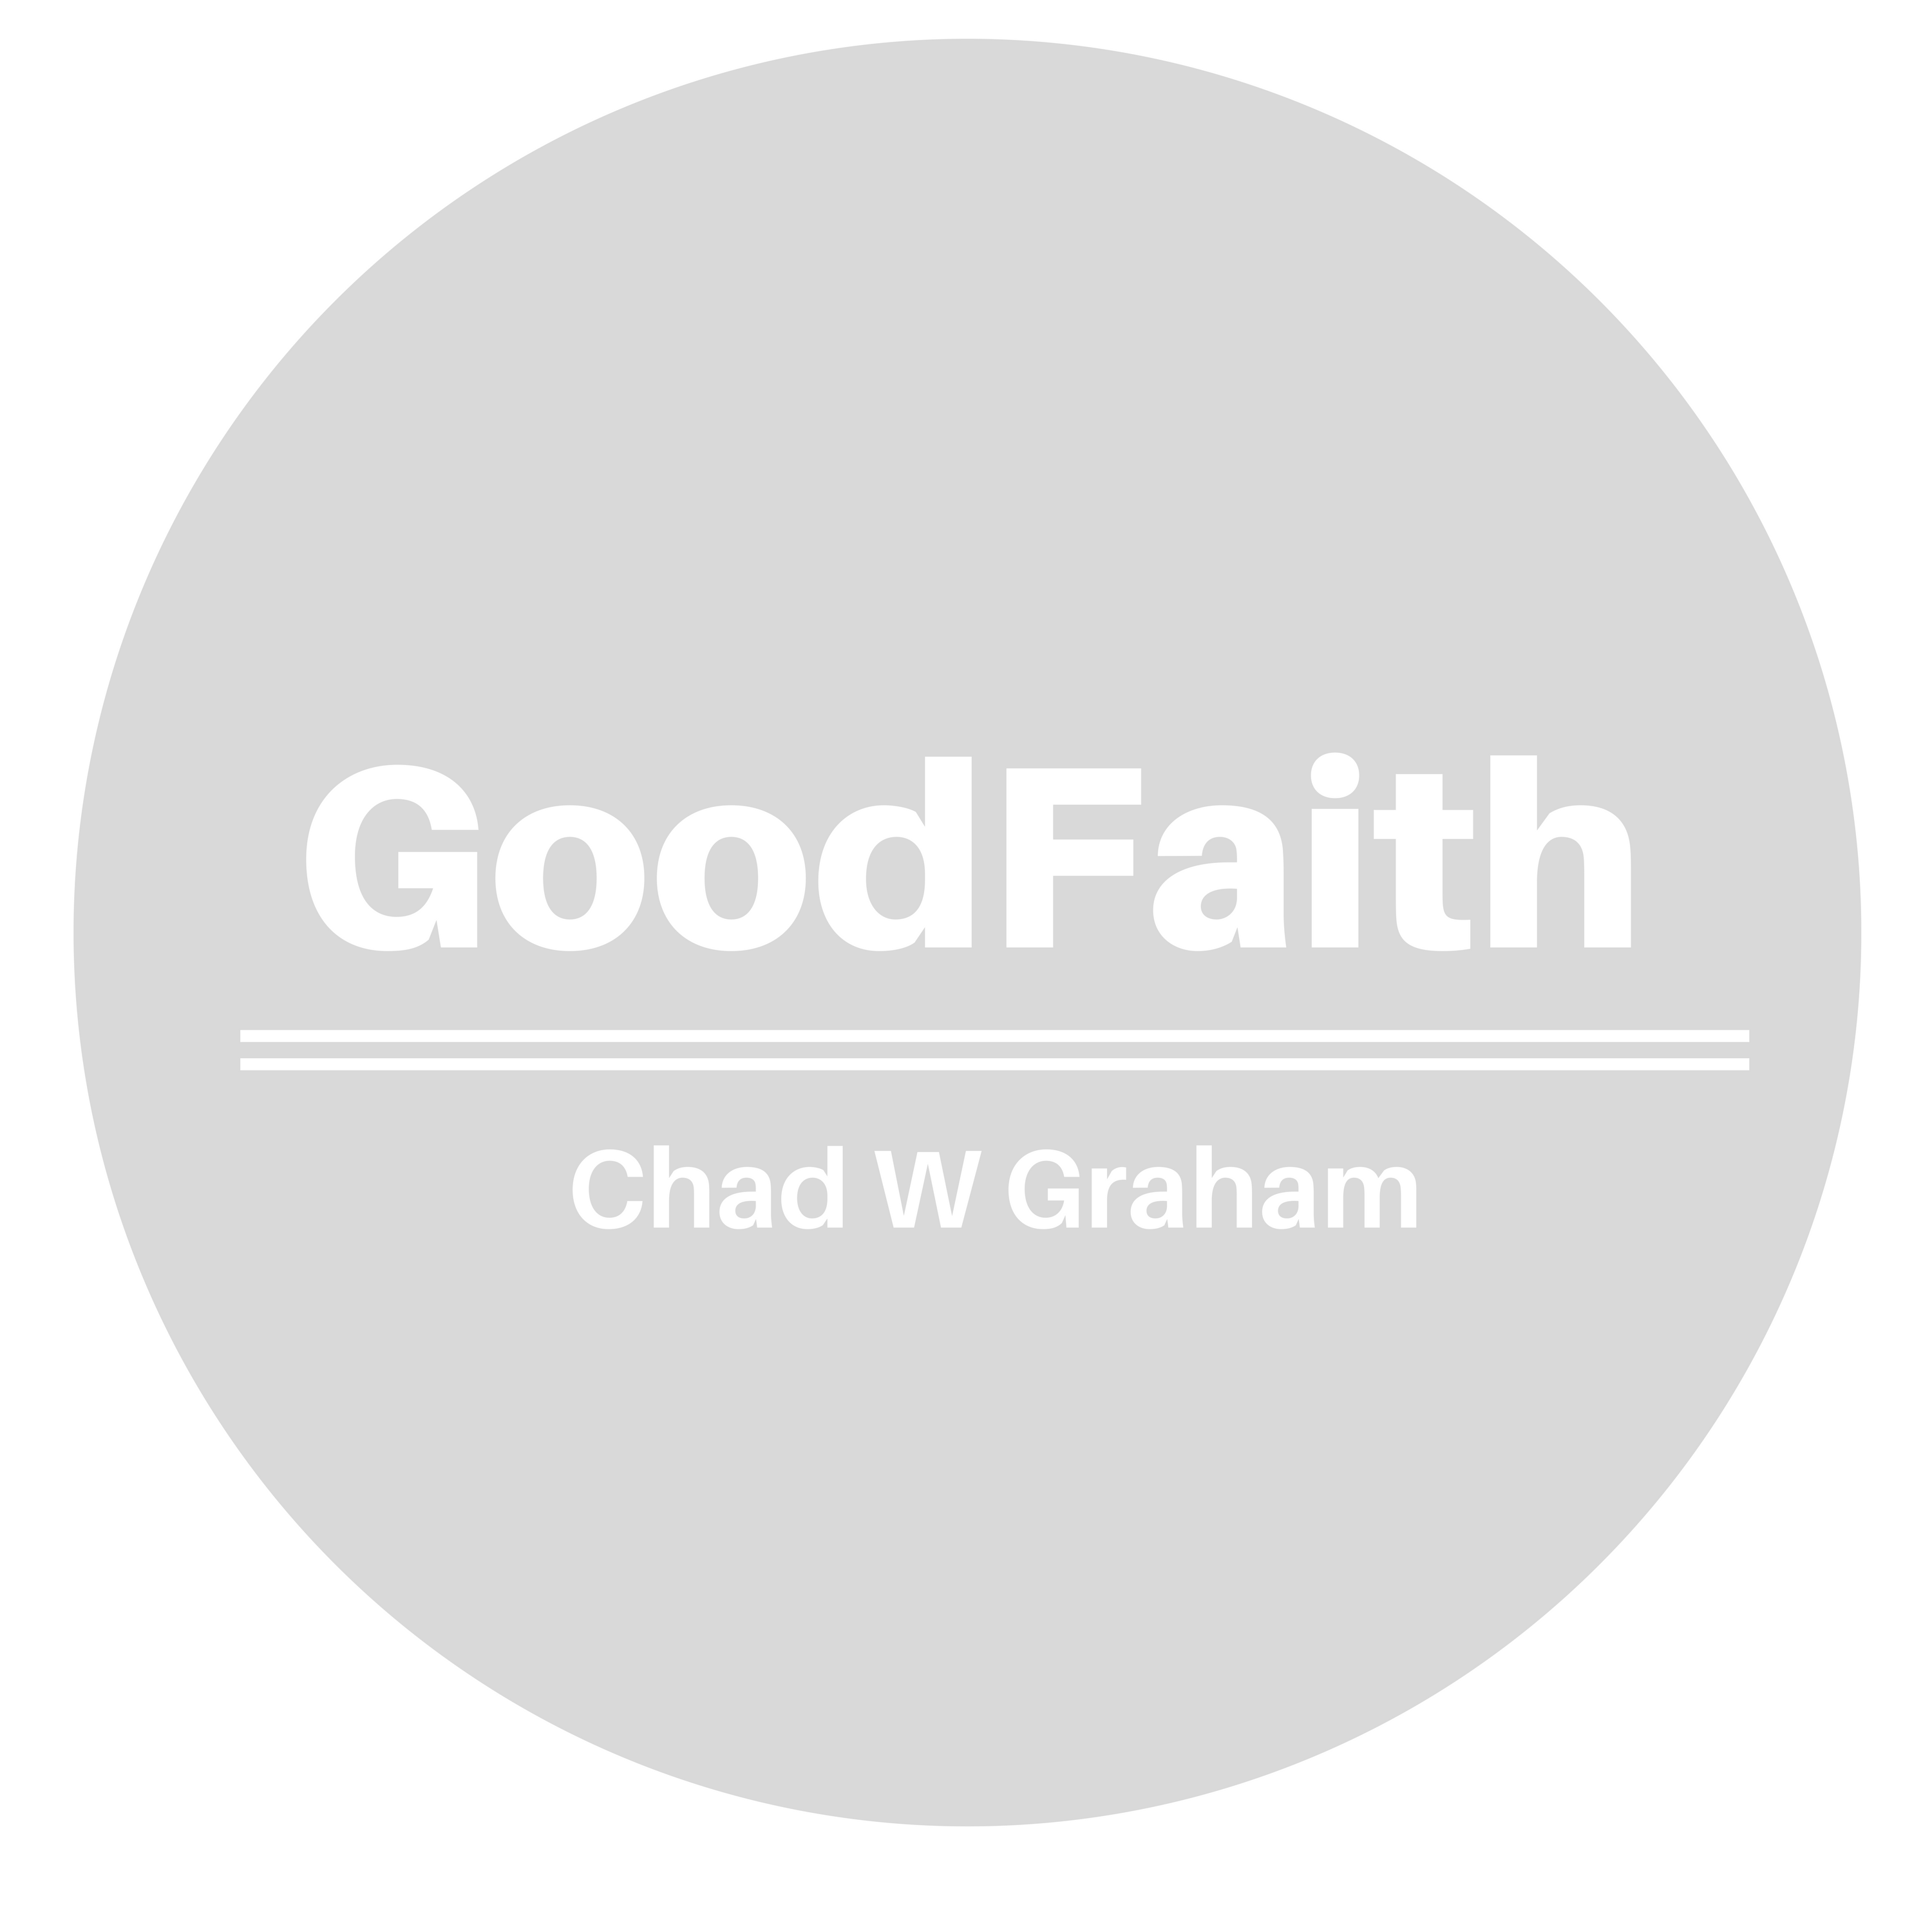 The GoodFaith Blog